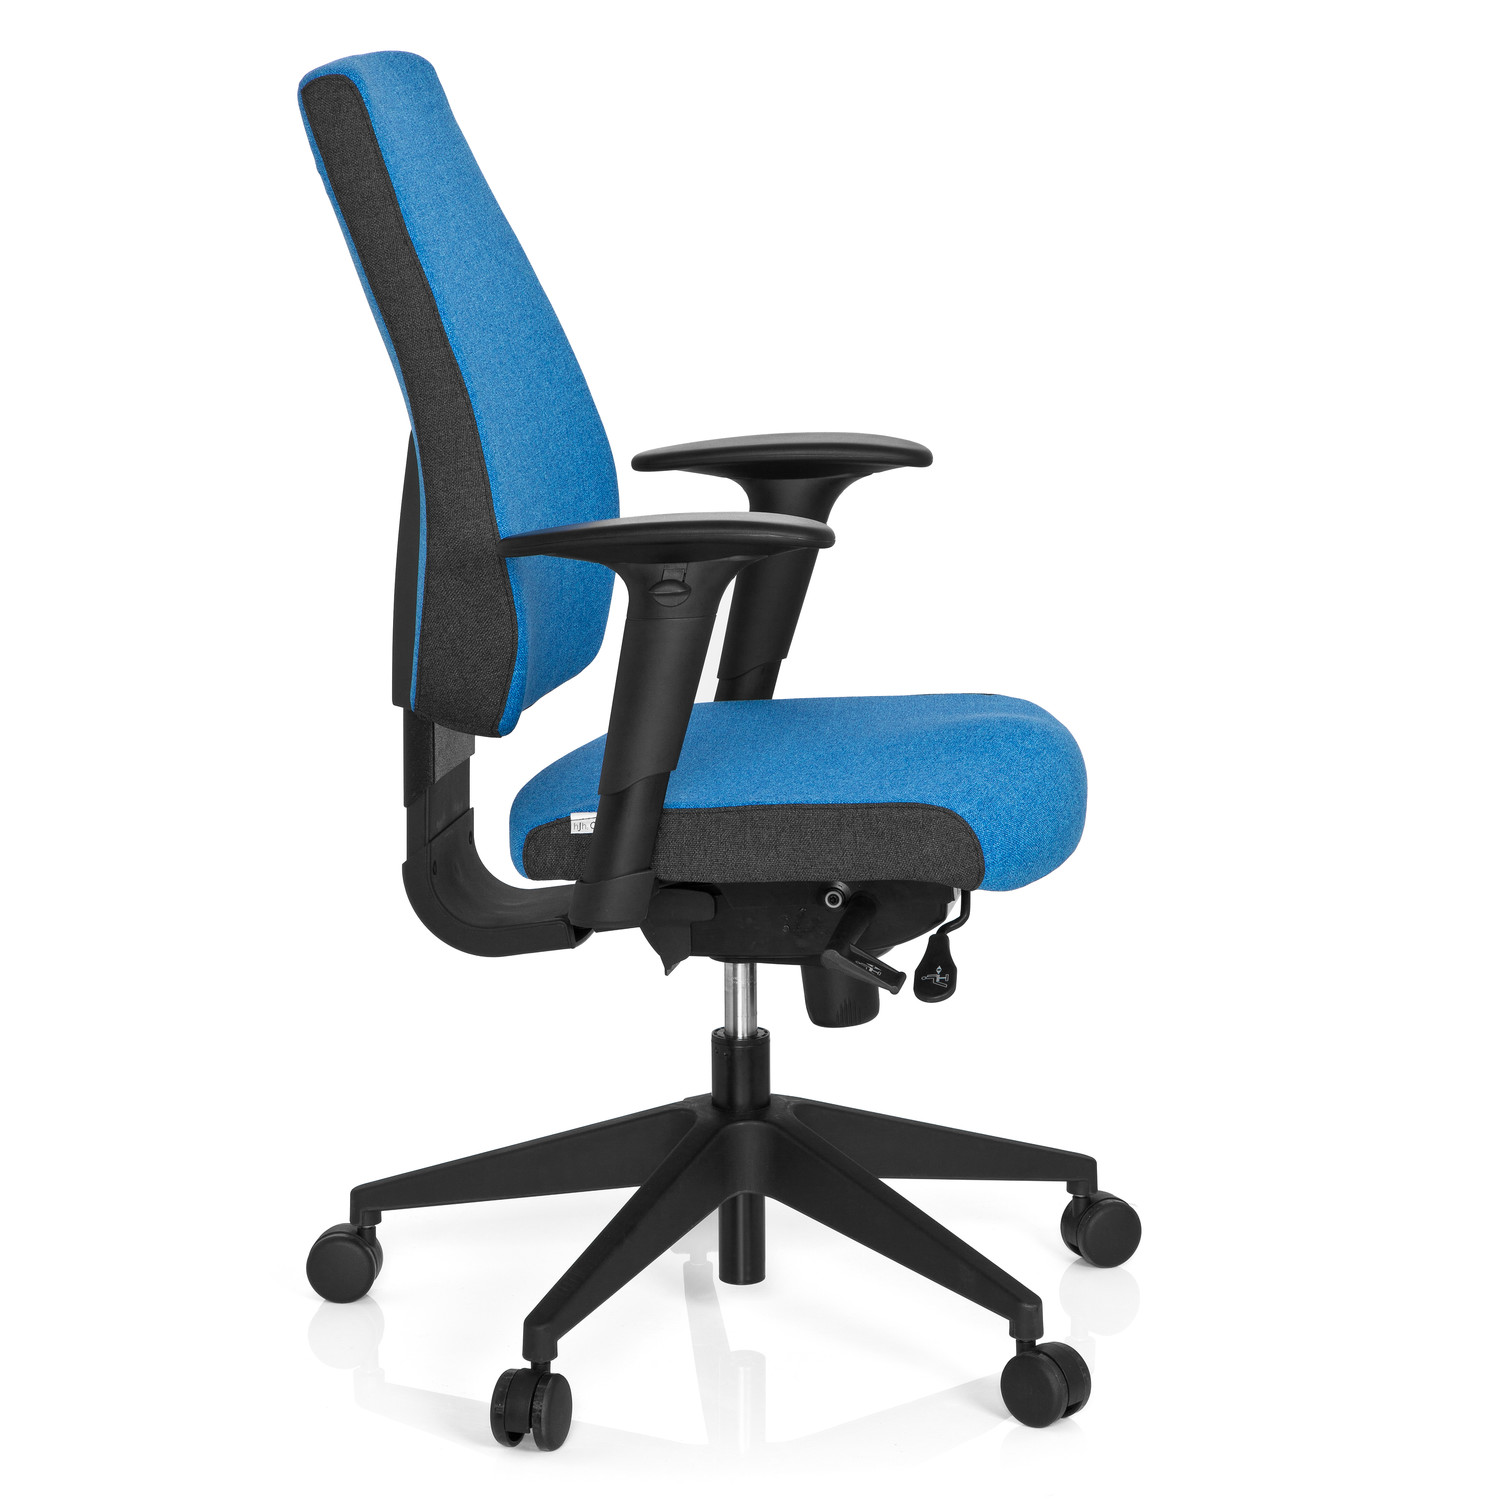 Sillas Ergonomicas Para Pc Silla Oficina Ergonómica Detroit Homologada Para 8 H 100 Regulable Color Azul